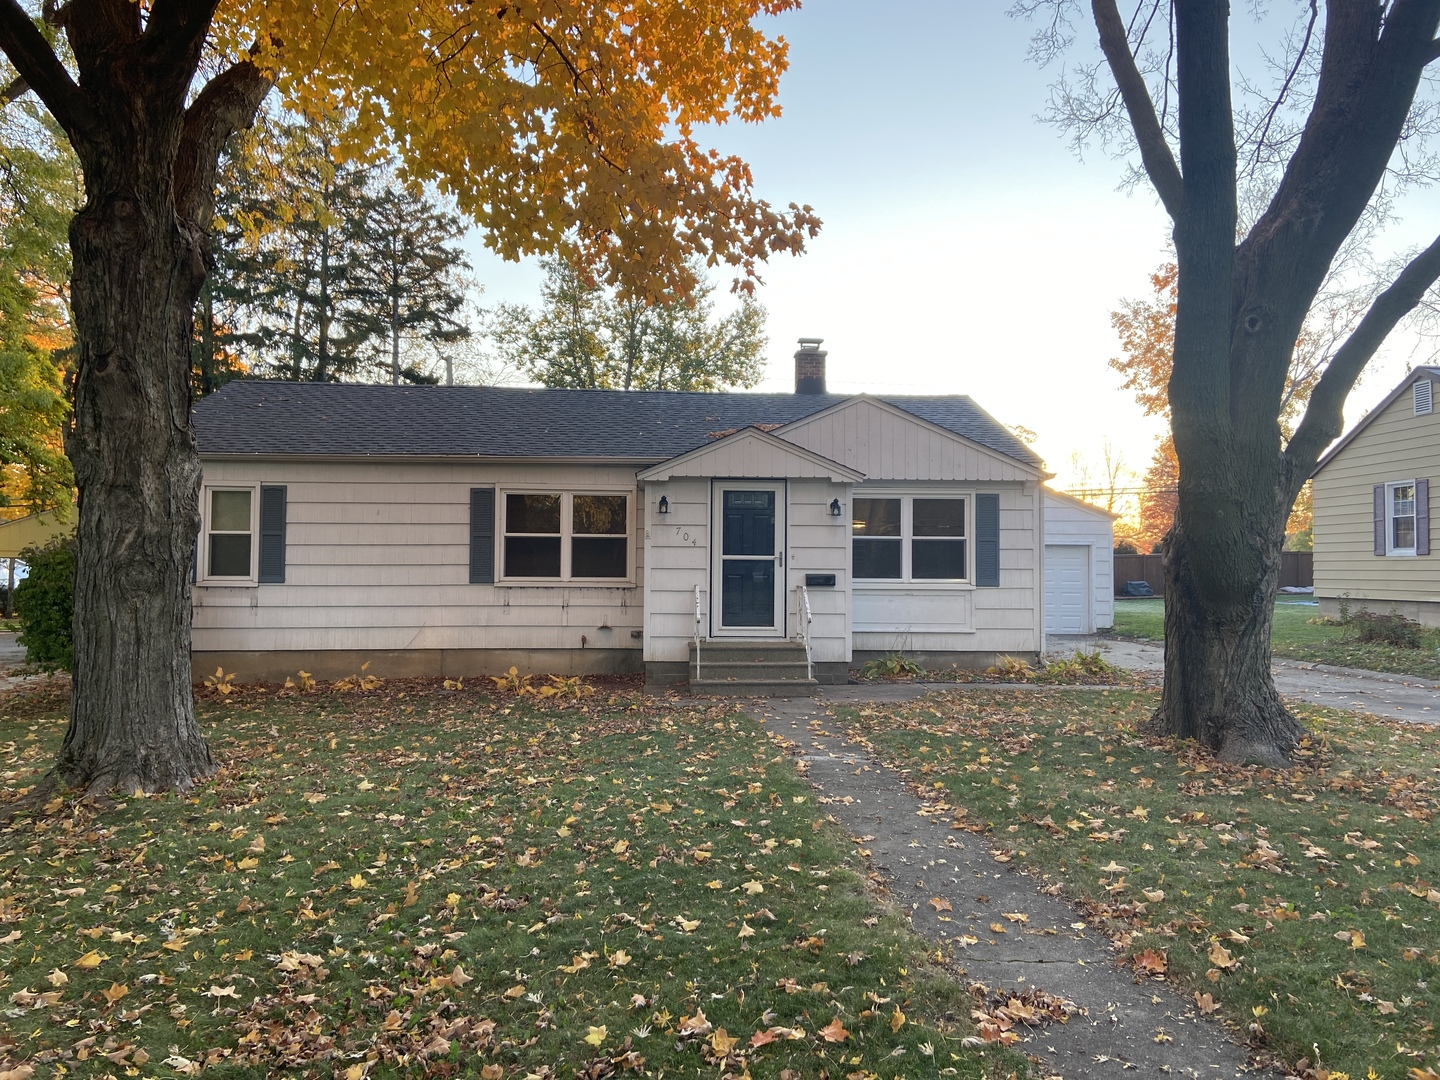 Photo for 704 Meadow Lane, Sycamore, IL 60178 (MLS # 10920374)